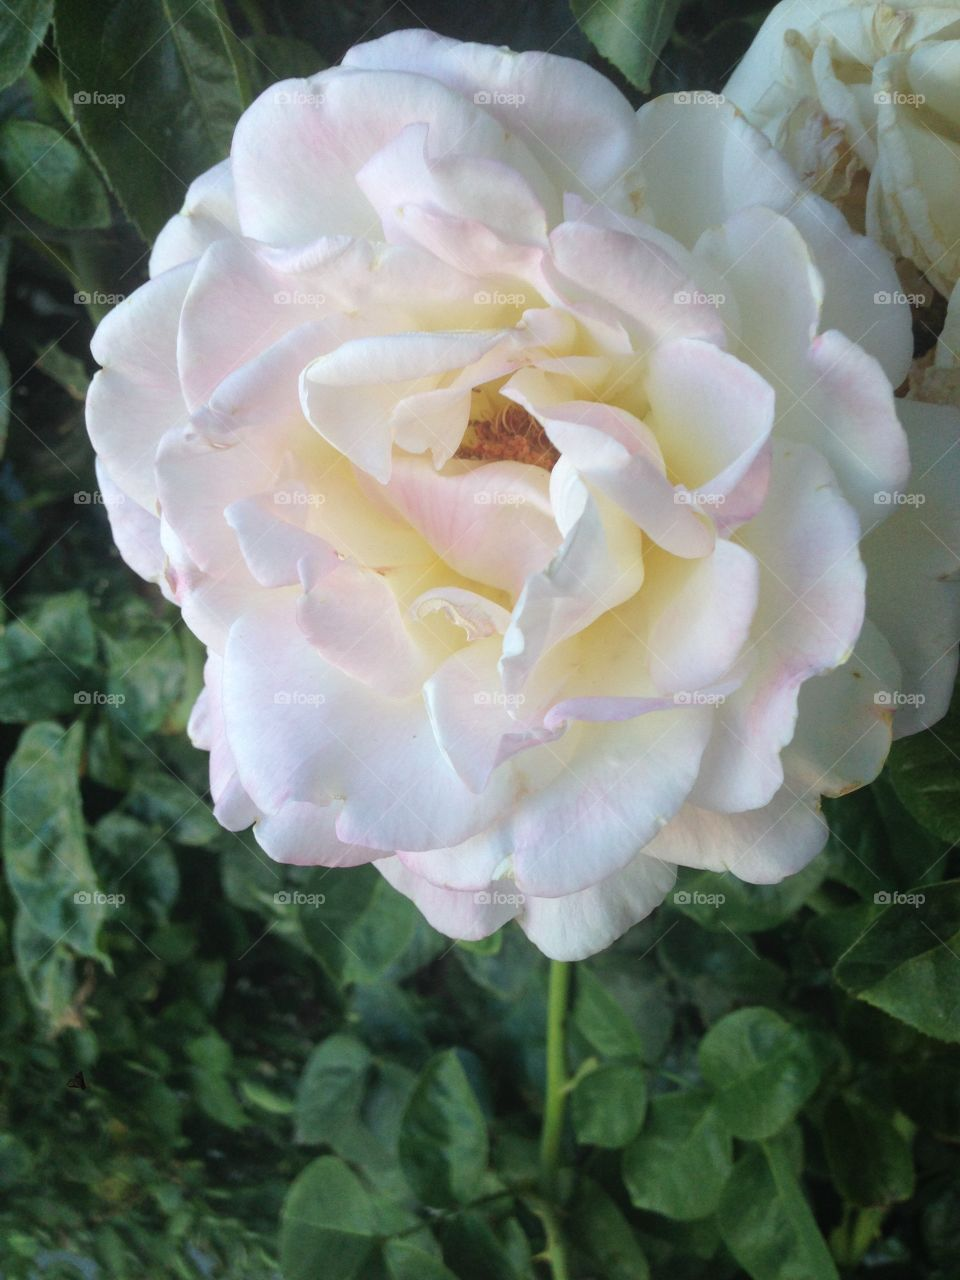 White rose with a hint of yellow and pink